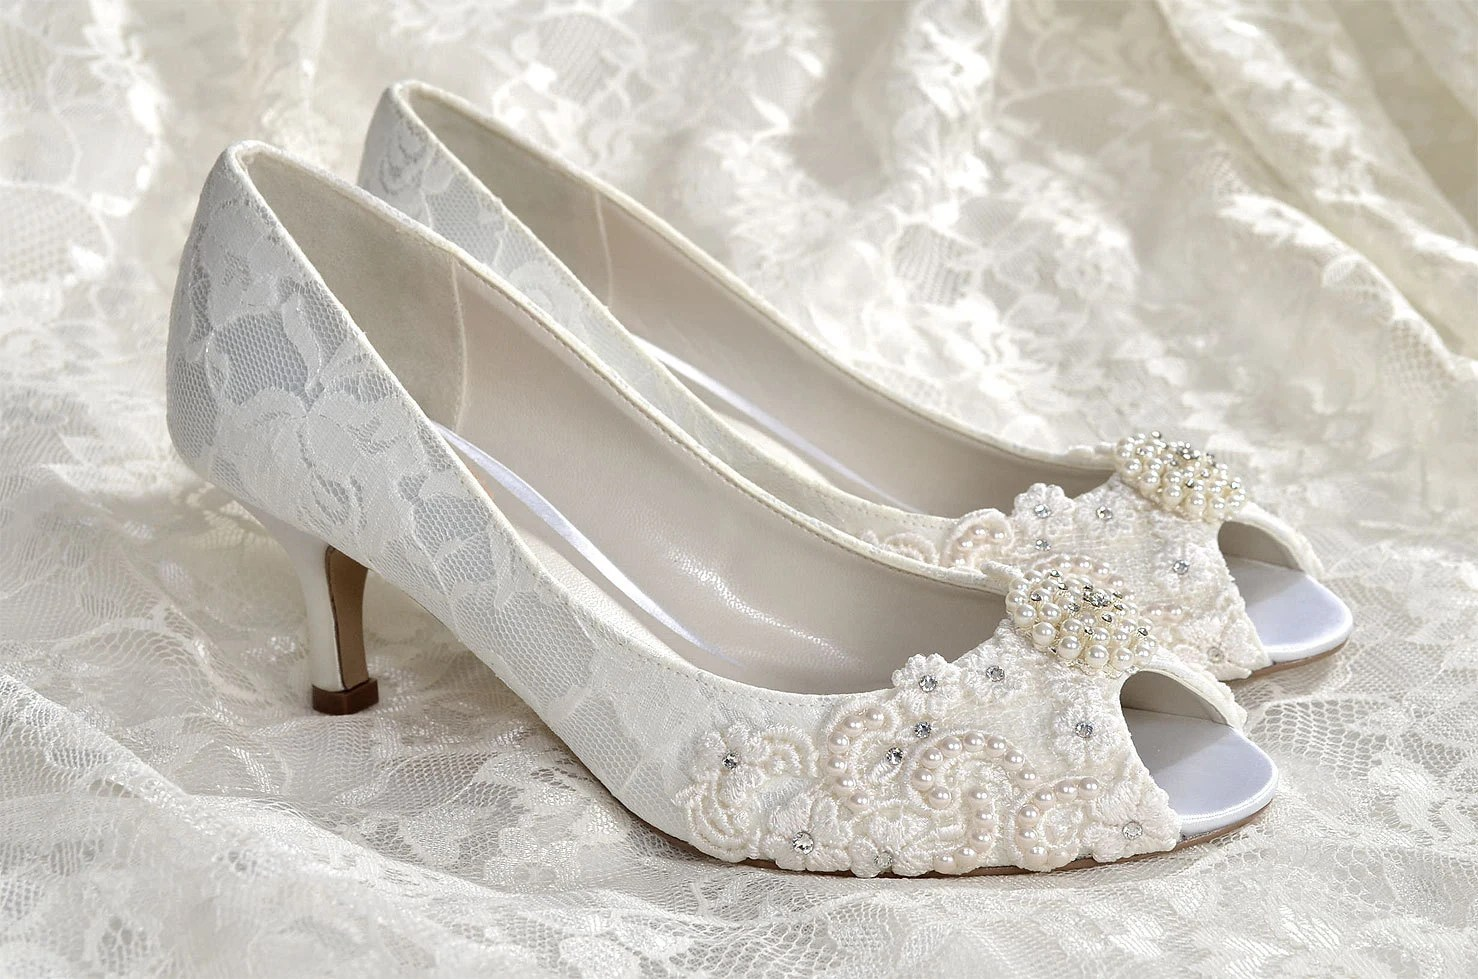 pearl bridal shoes wedding sandals for bride Wedding Shoes Medium Heels Custom Colors Vintage Wedding Lace Peep Toe Wedding Heels Women s Bridal Shoes PBP 2 25 Heels Pink 2 Blue